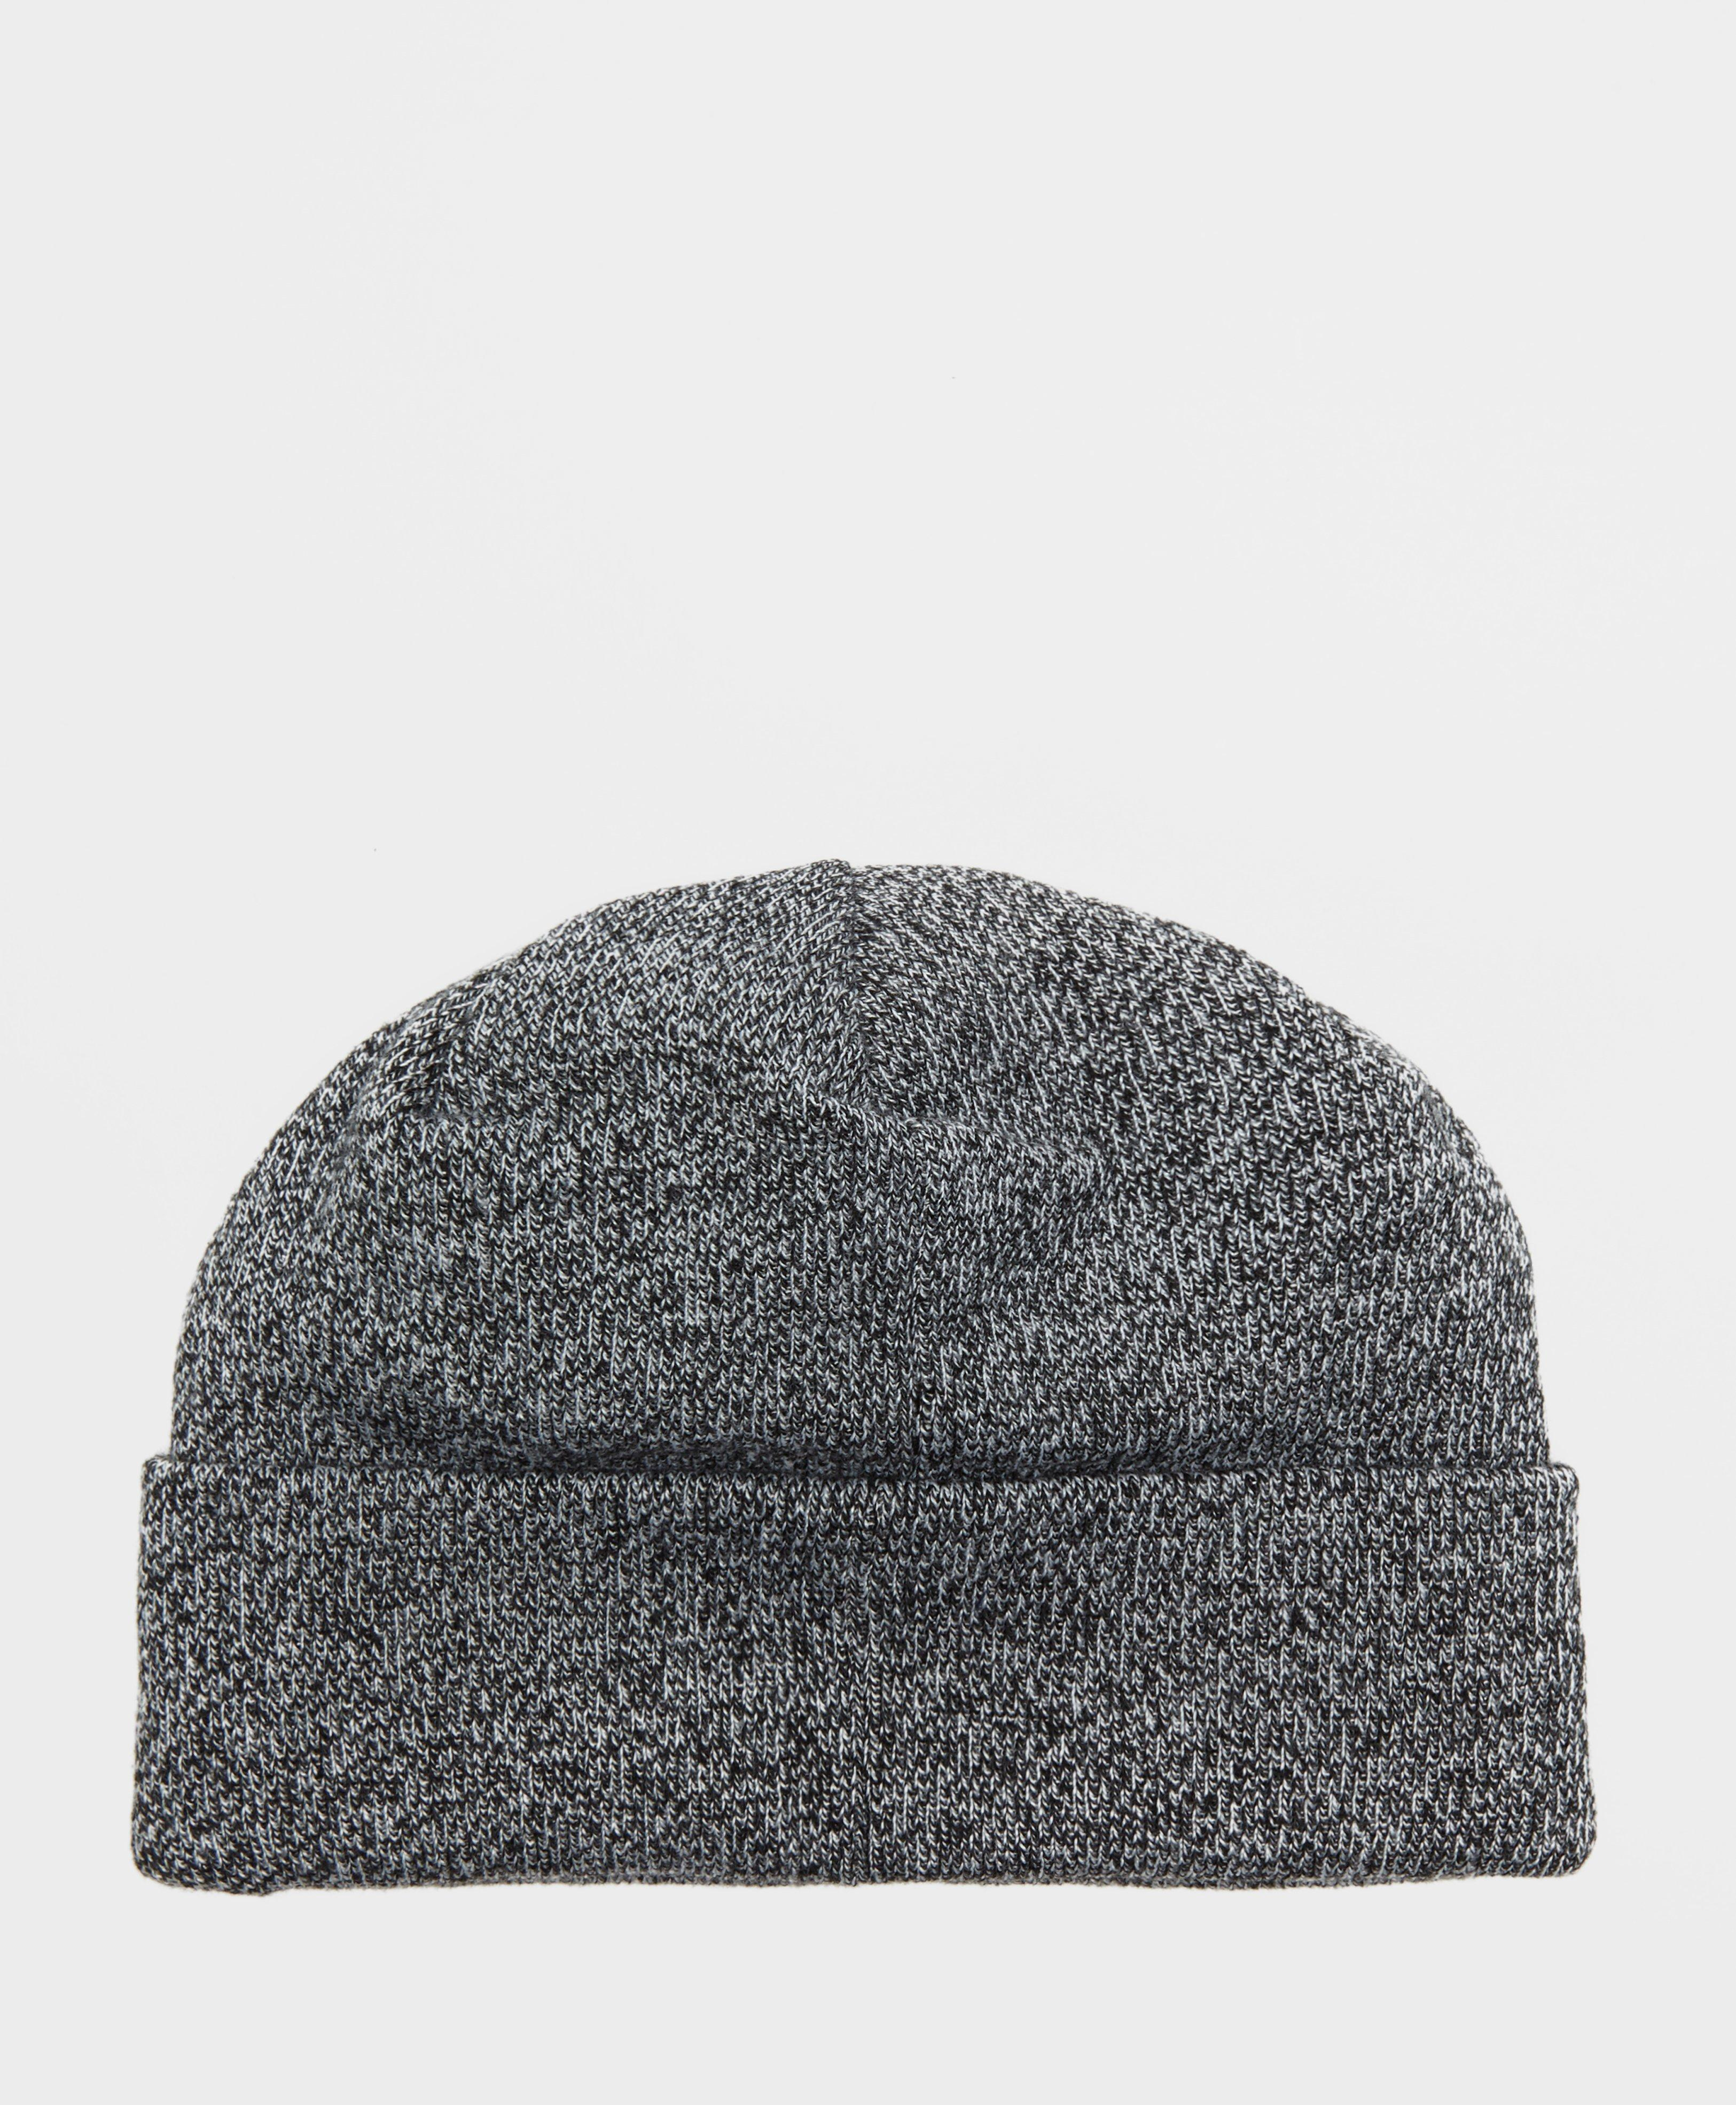 53118140897d2 Lyst - adidas Originals Ribbed Logo Beanie in Gray for Men